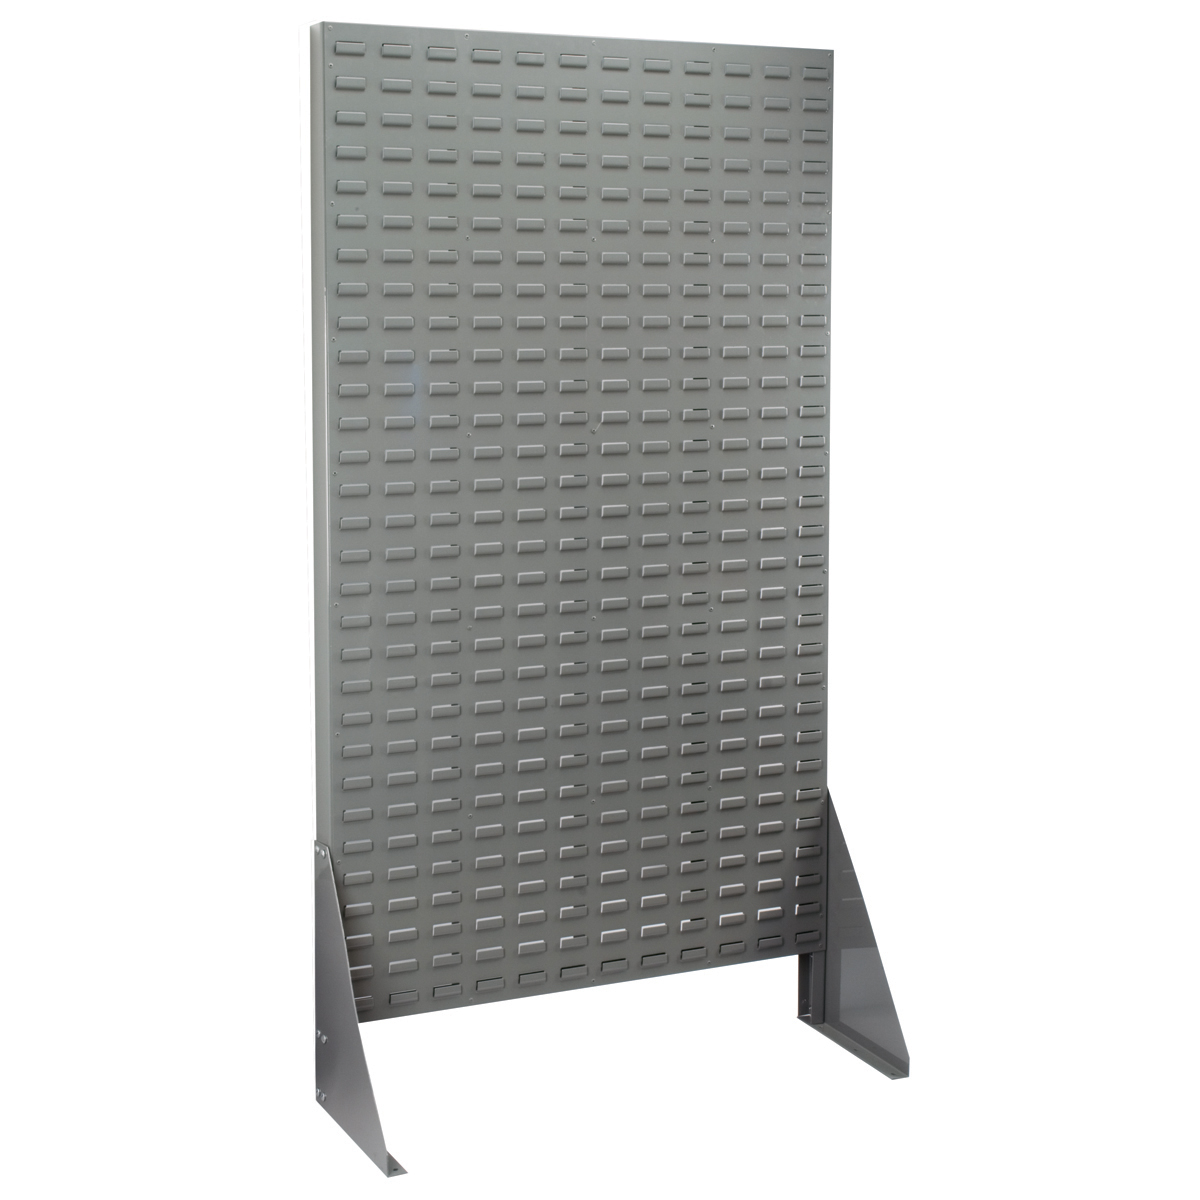 Louvered Rivet Floor Rack, 1-Sided, Gray (30661).  This item sold in carton quantities of 1.